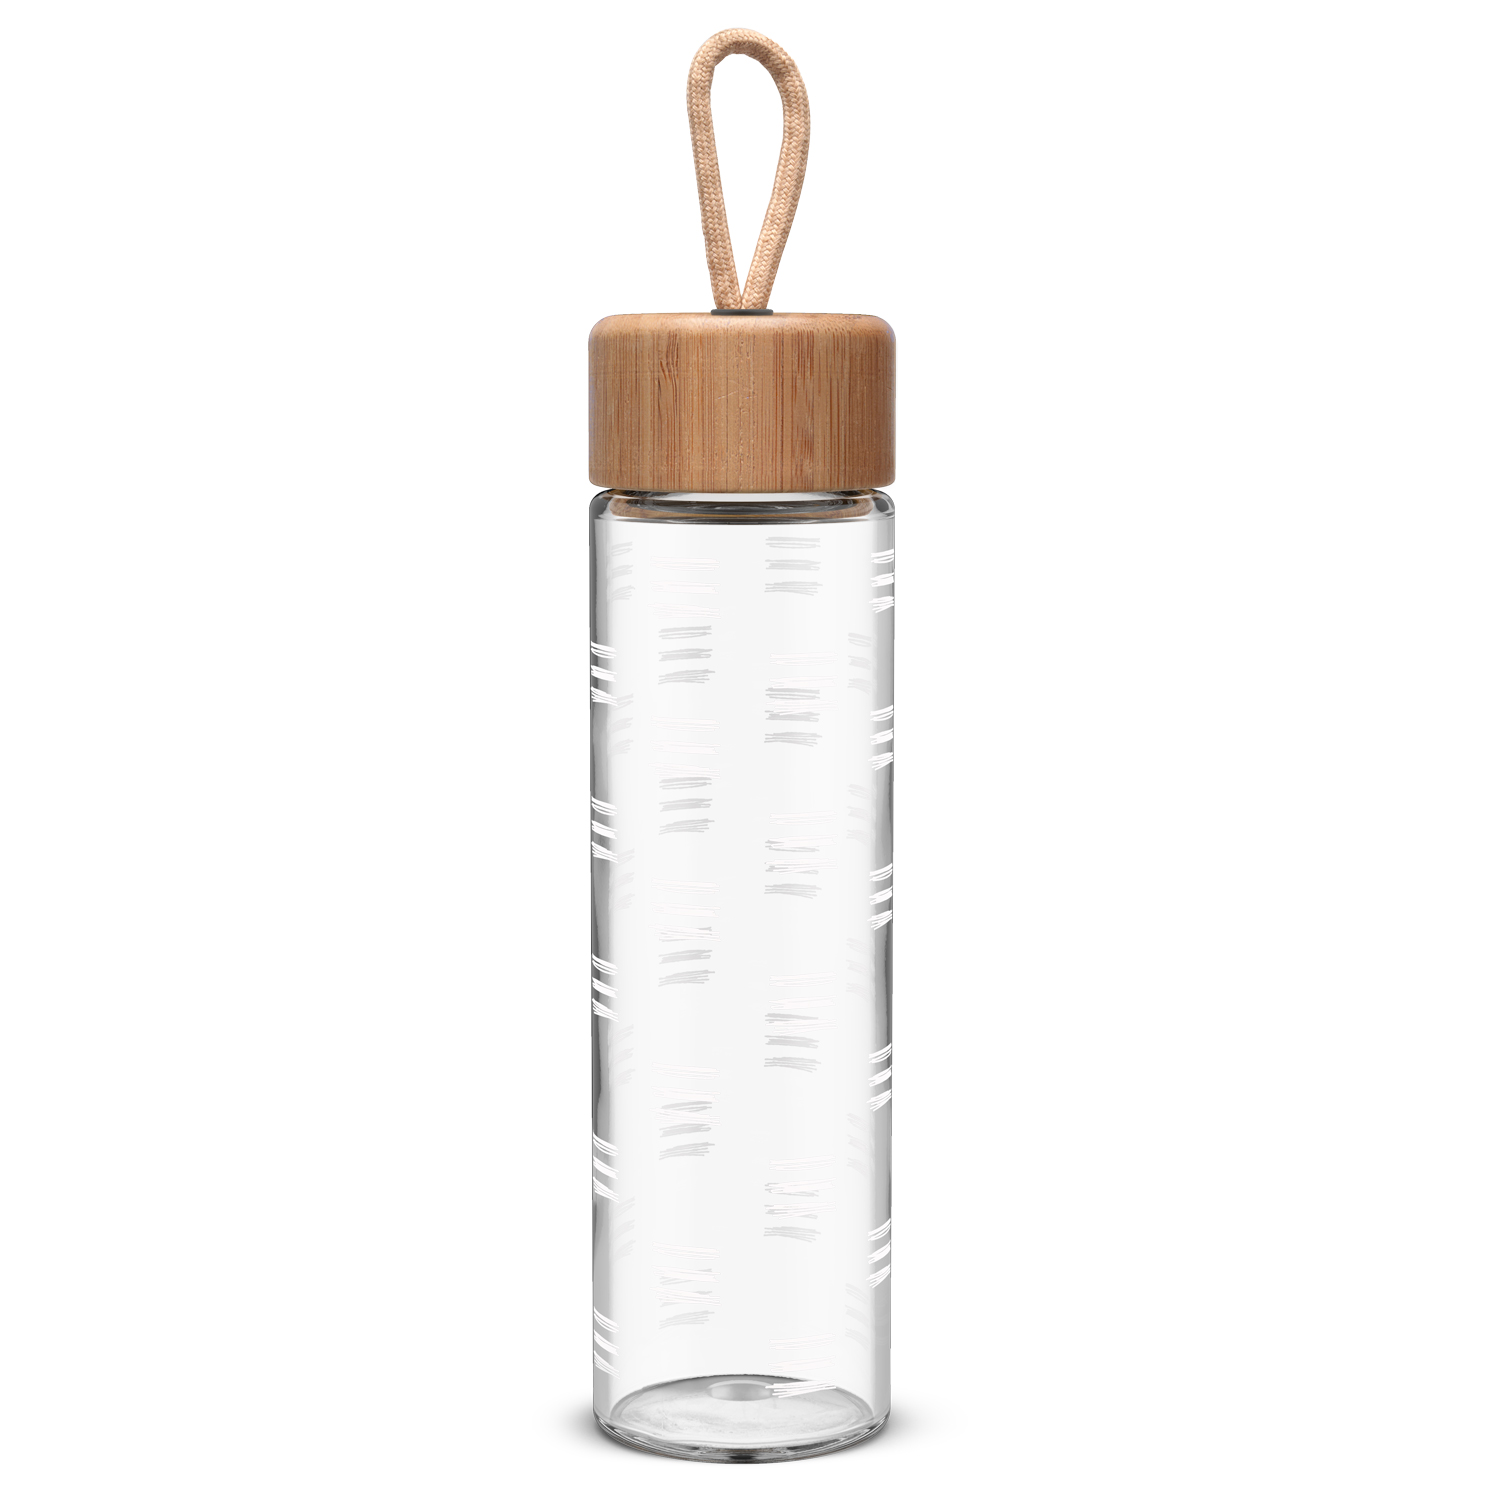 Thrive 20oz Glass Water Bottle - $15.99